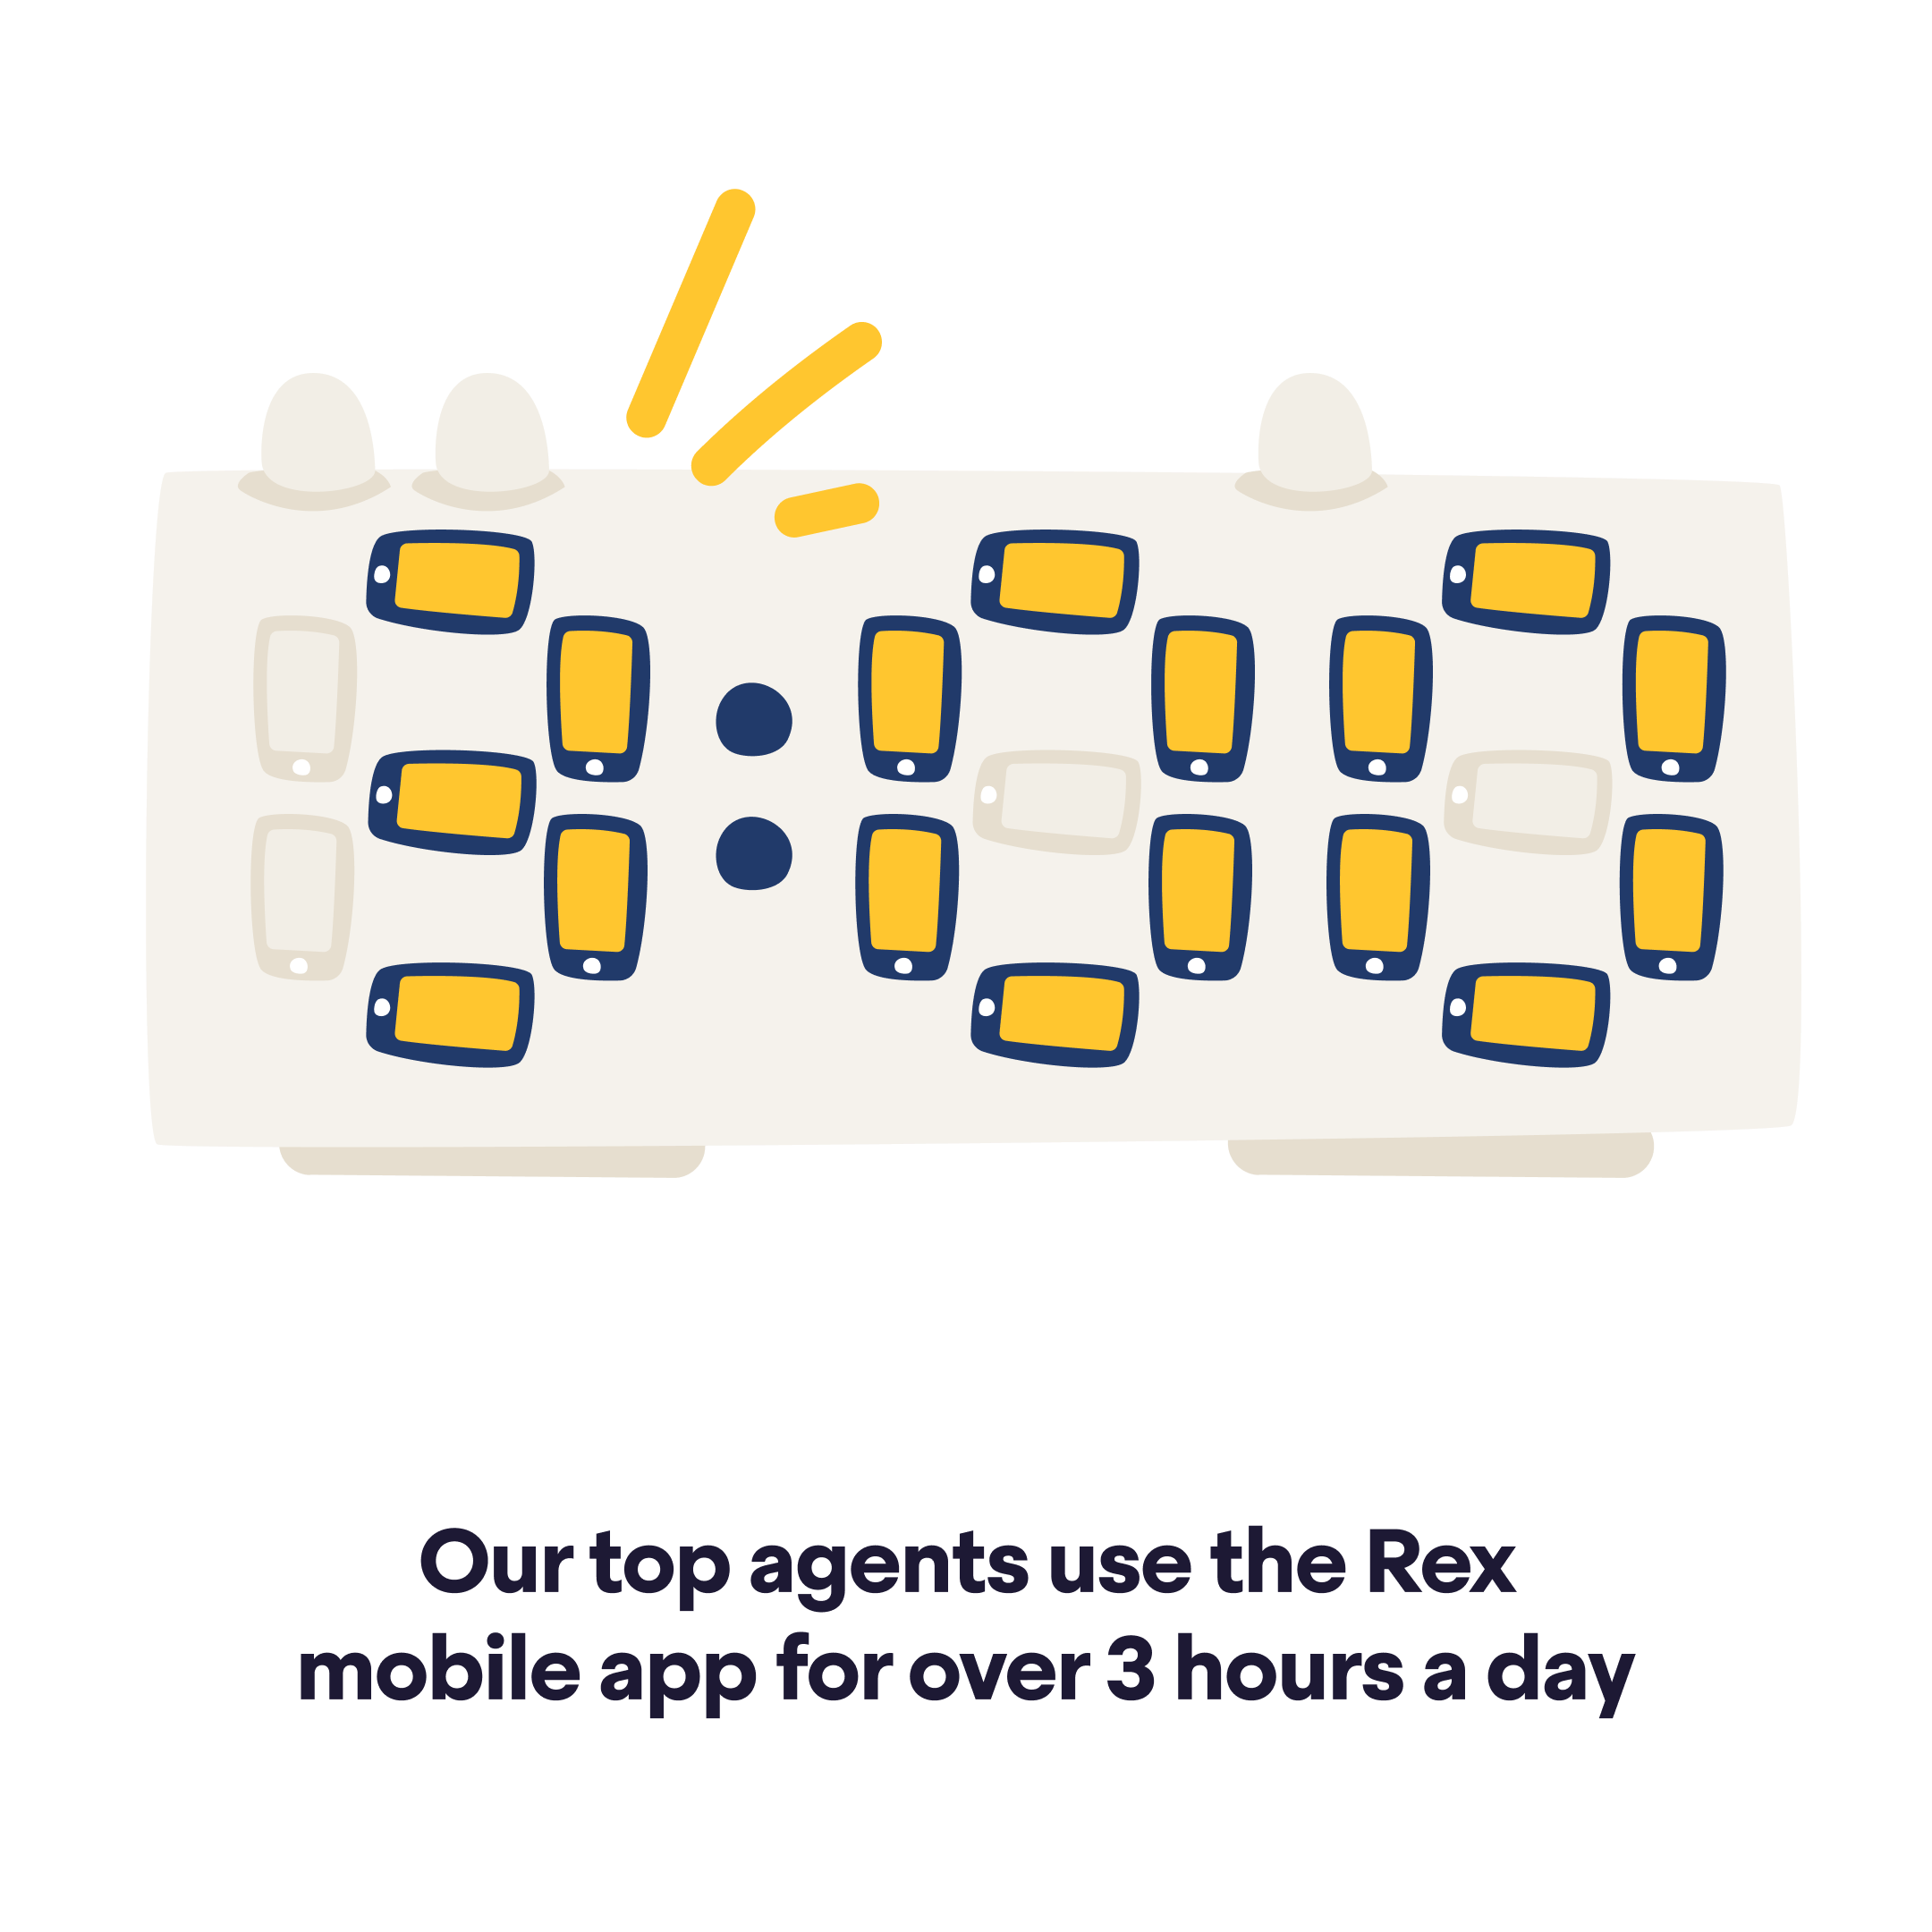 Our top agents use the Rex mobile app for over 3 hours a day